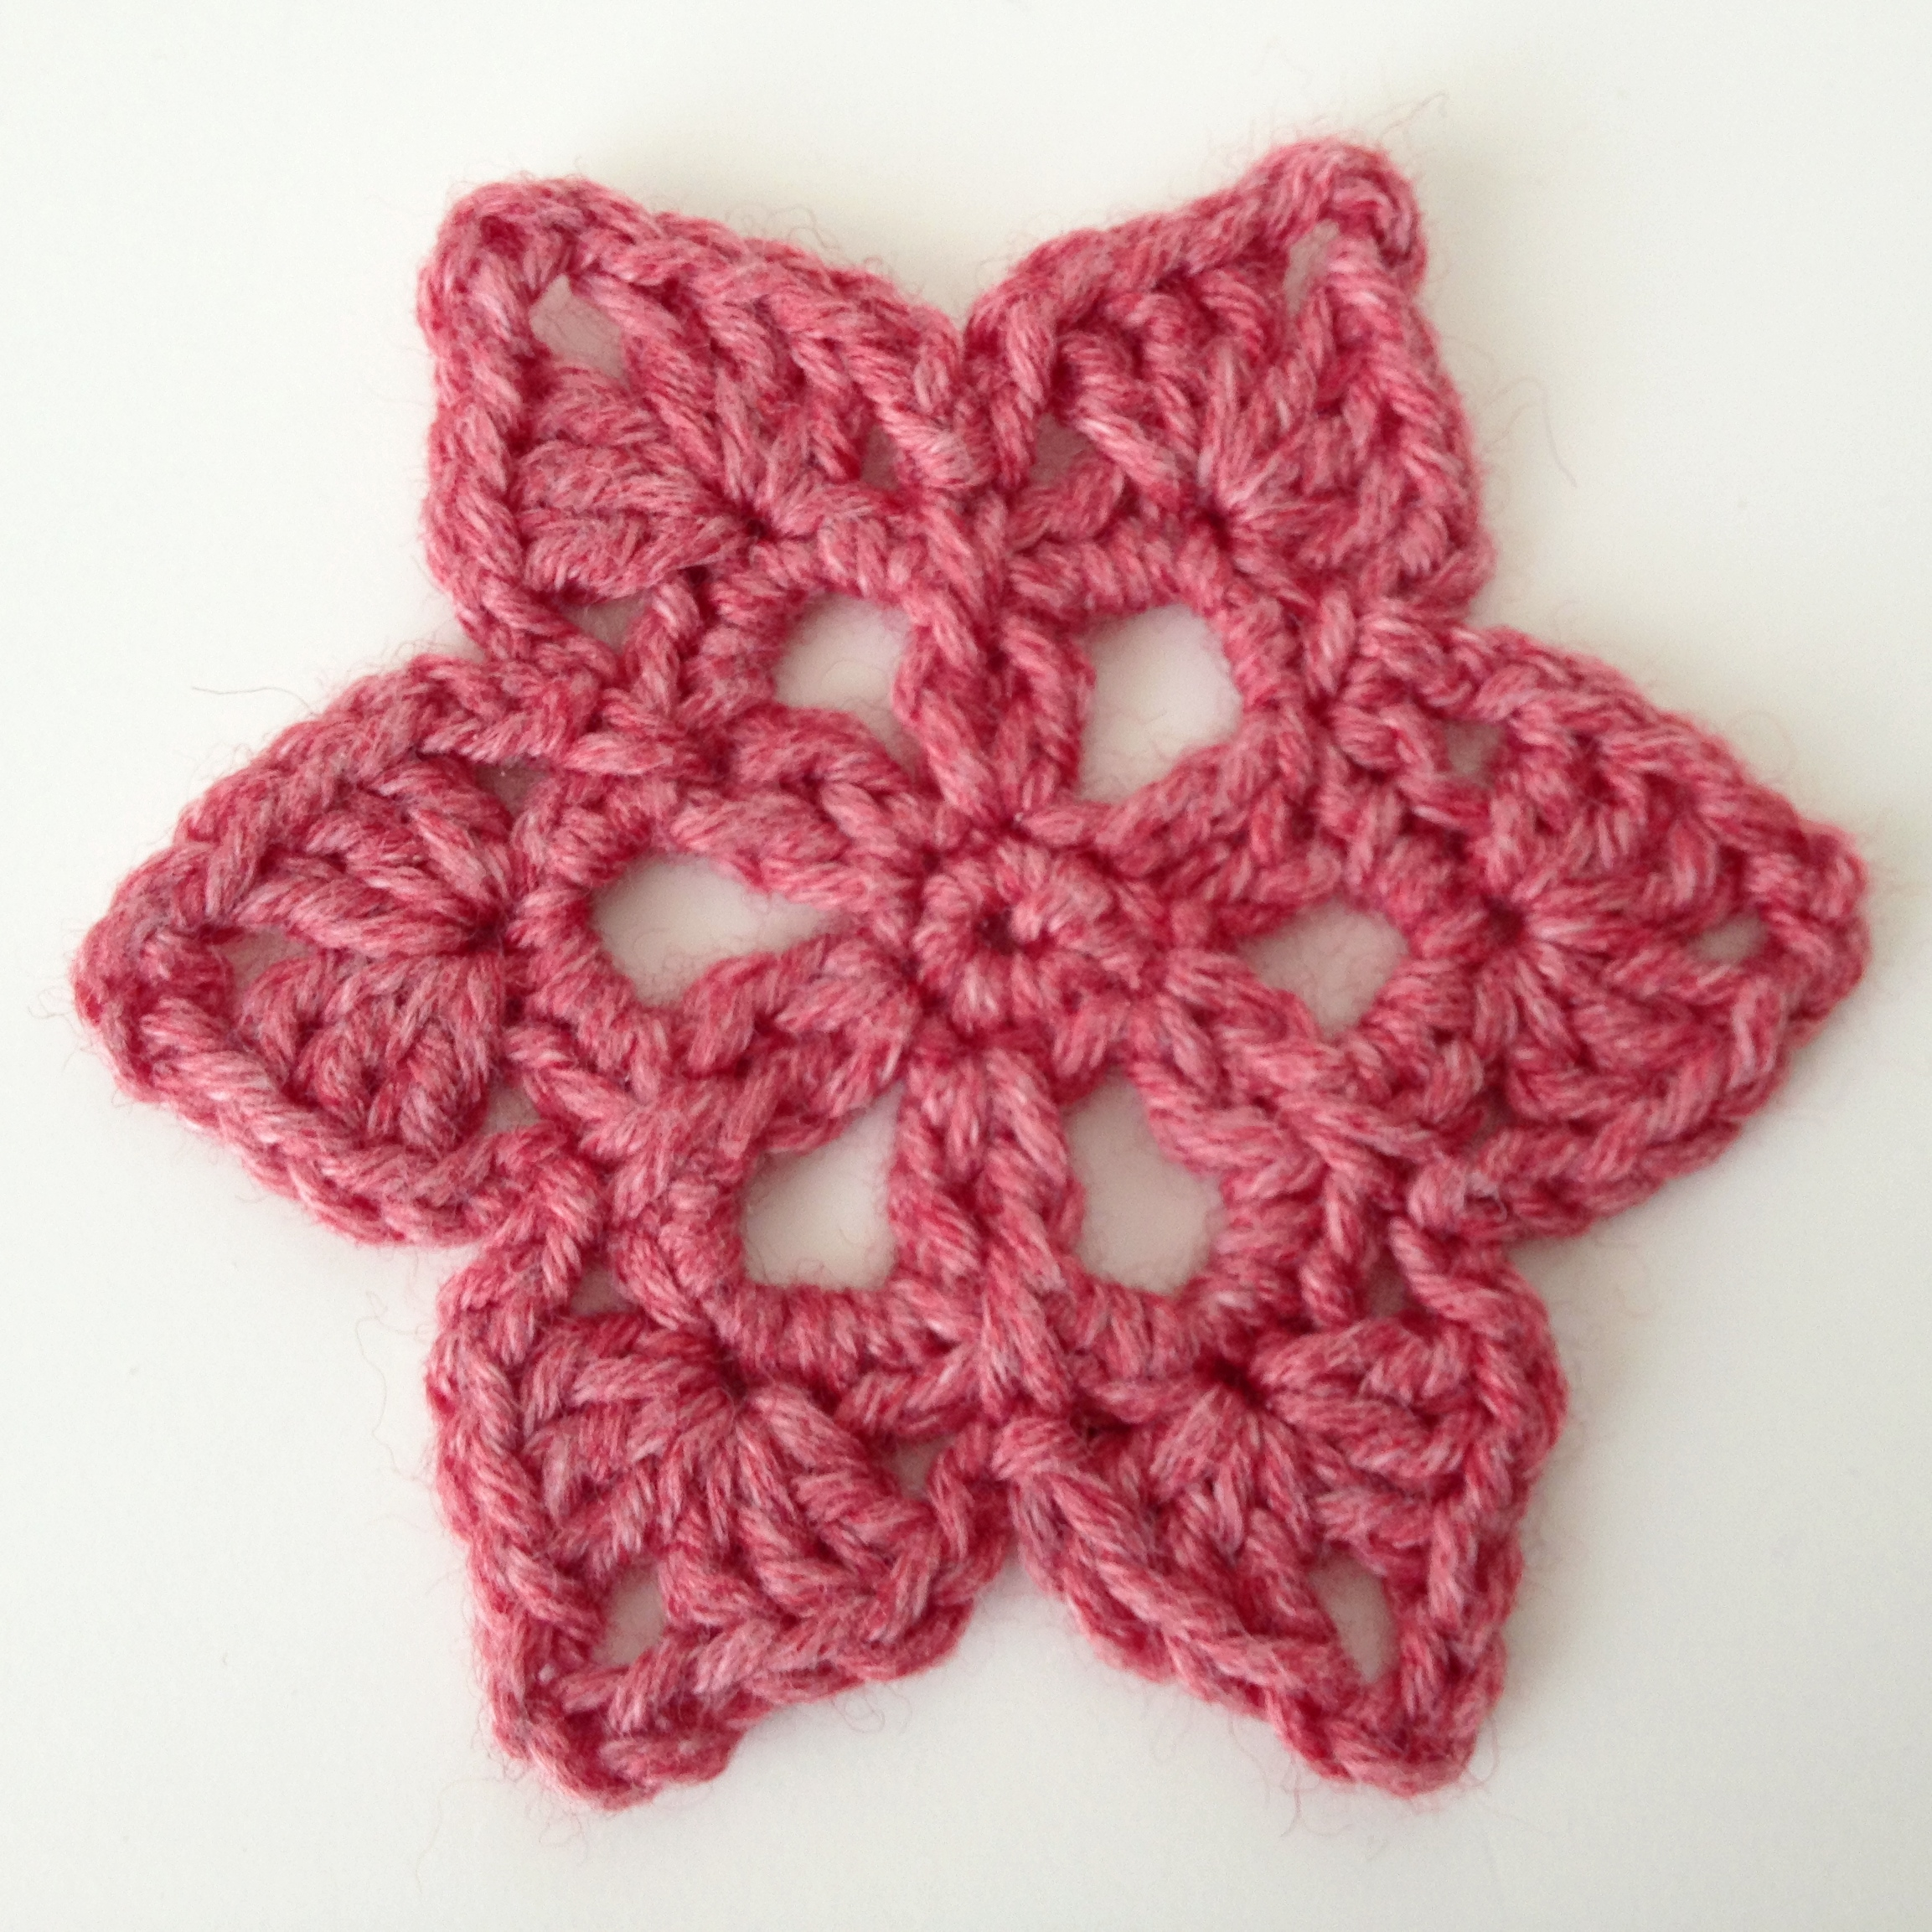 Crochet : Crochet motif #36 from the book ?Beyond the square Crochet motifs?